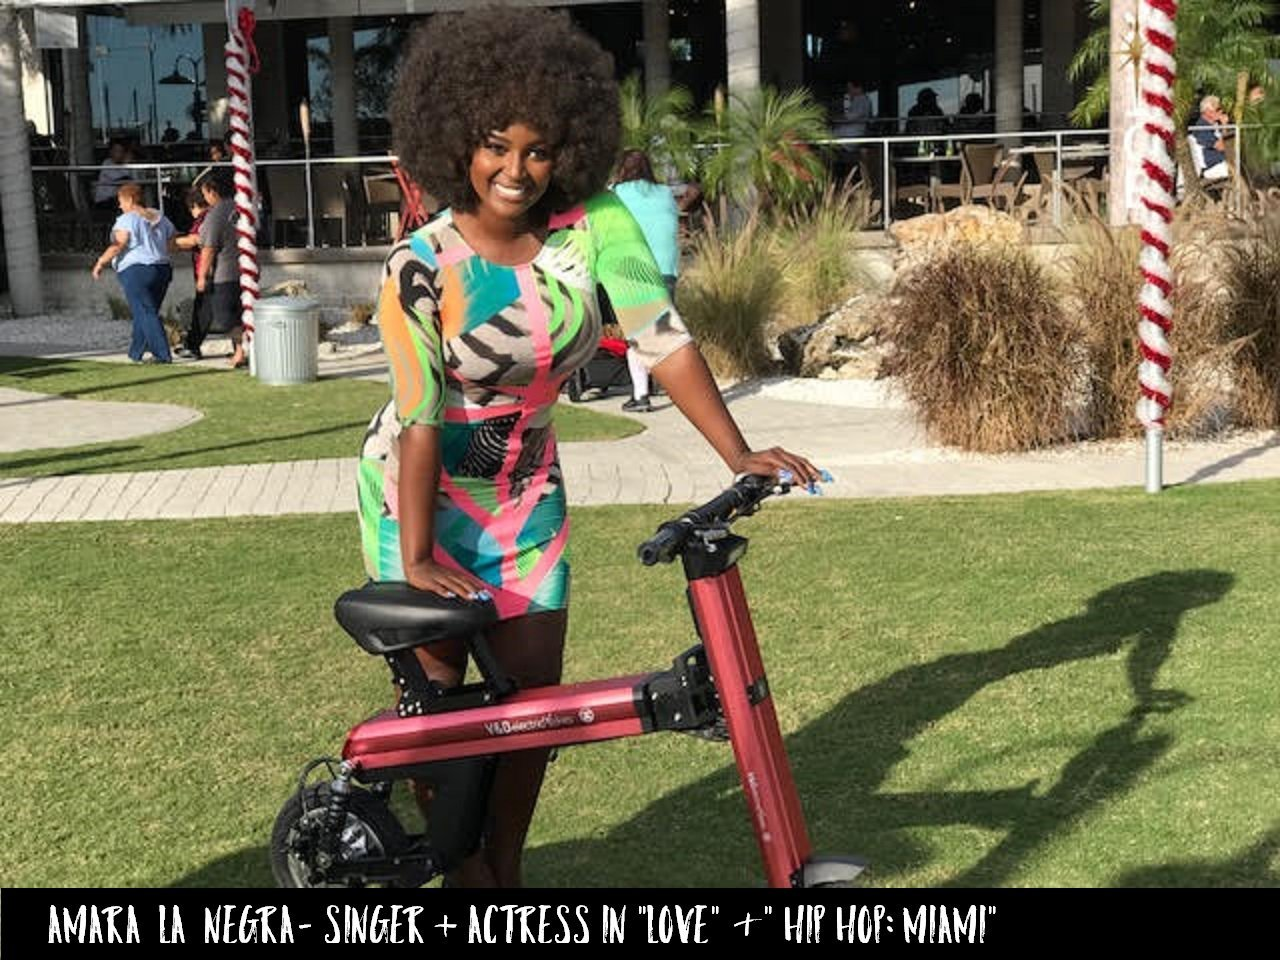 Actress and singer from Love & Hip Hop Amara La Negra is promoting the Red Go-Bike M2